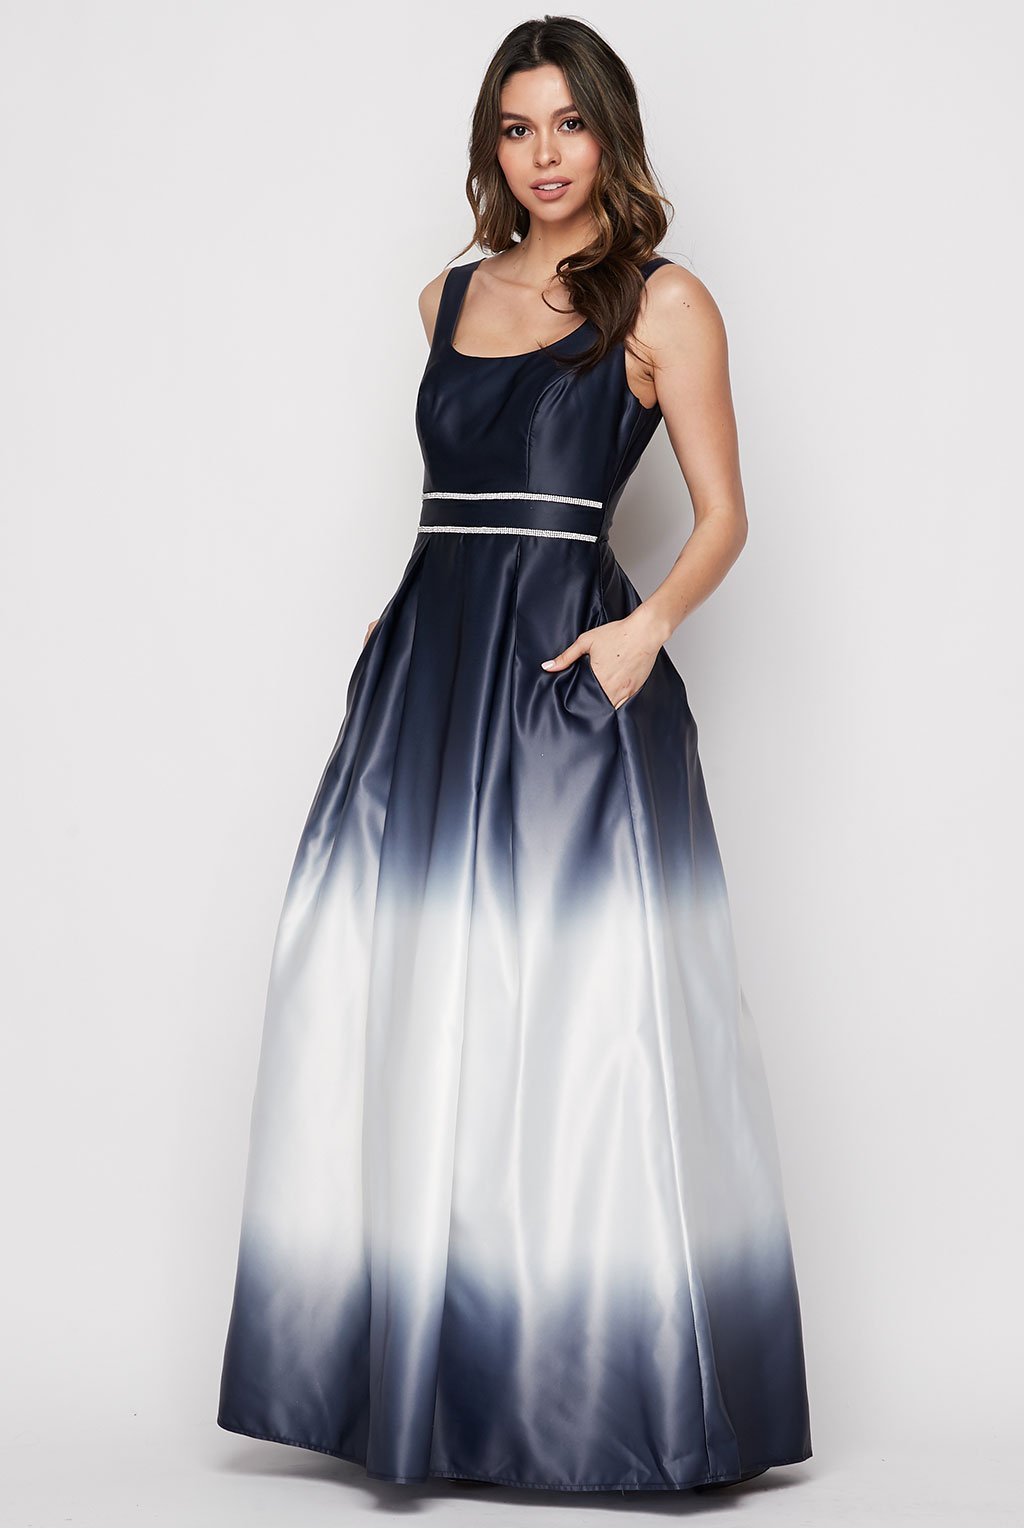 Teeze Me | Ombre Satin Ball Gown | Navy Ombre